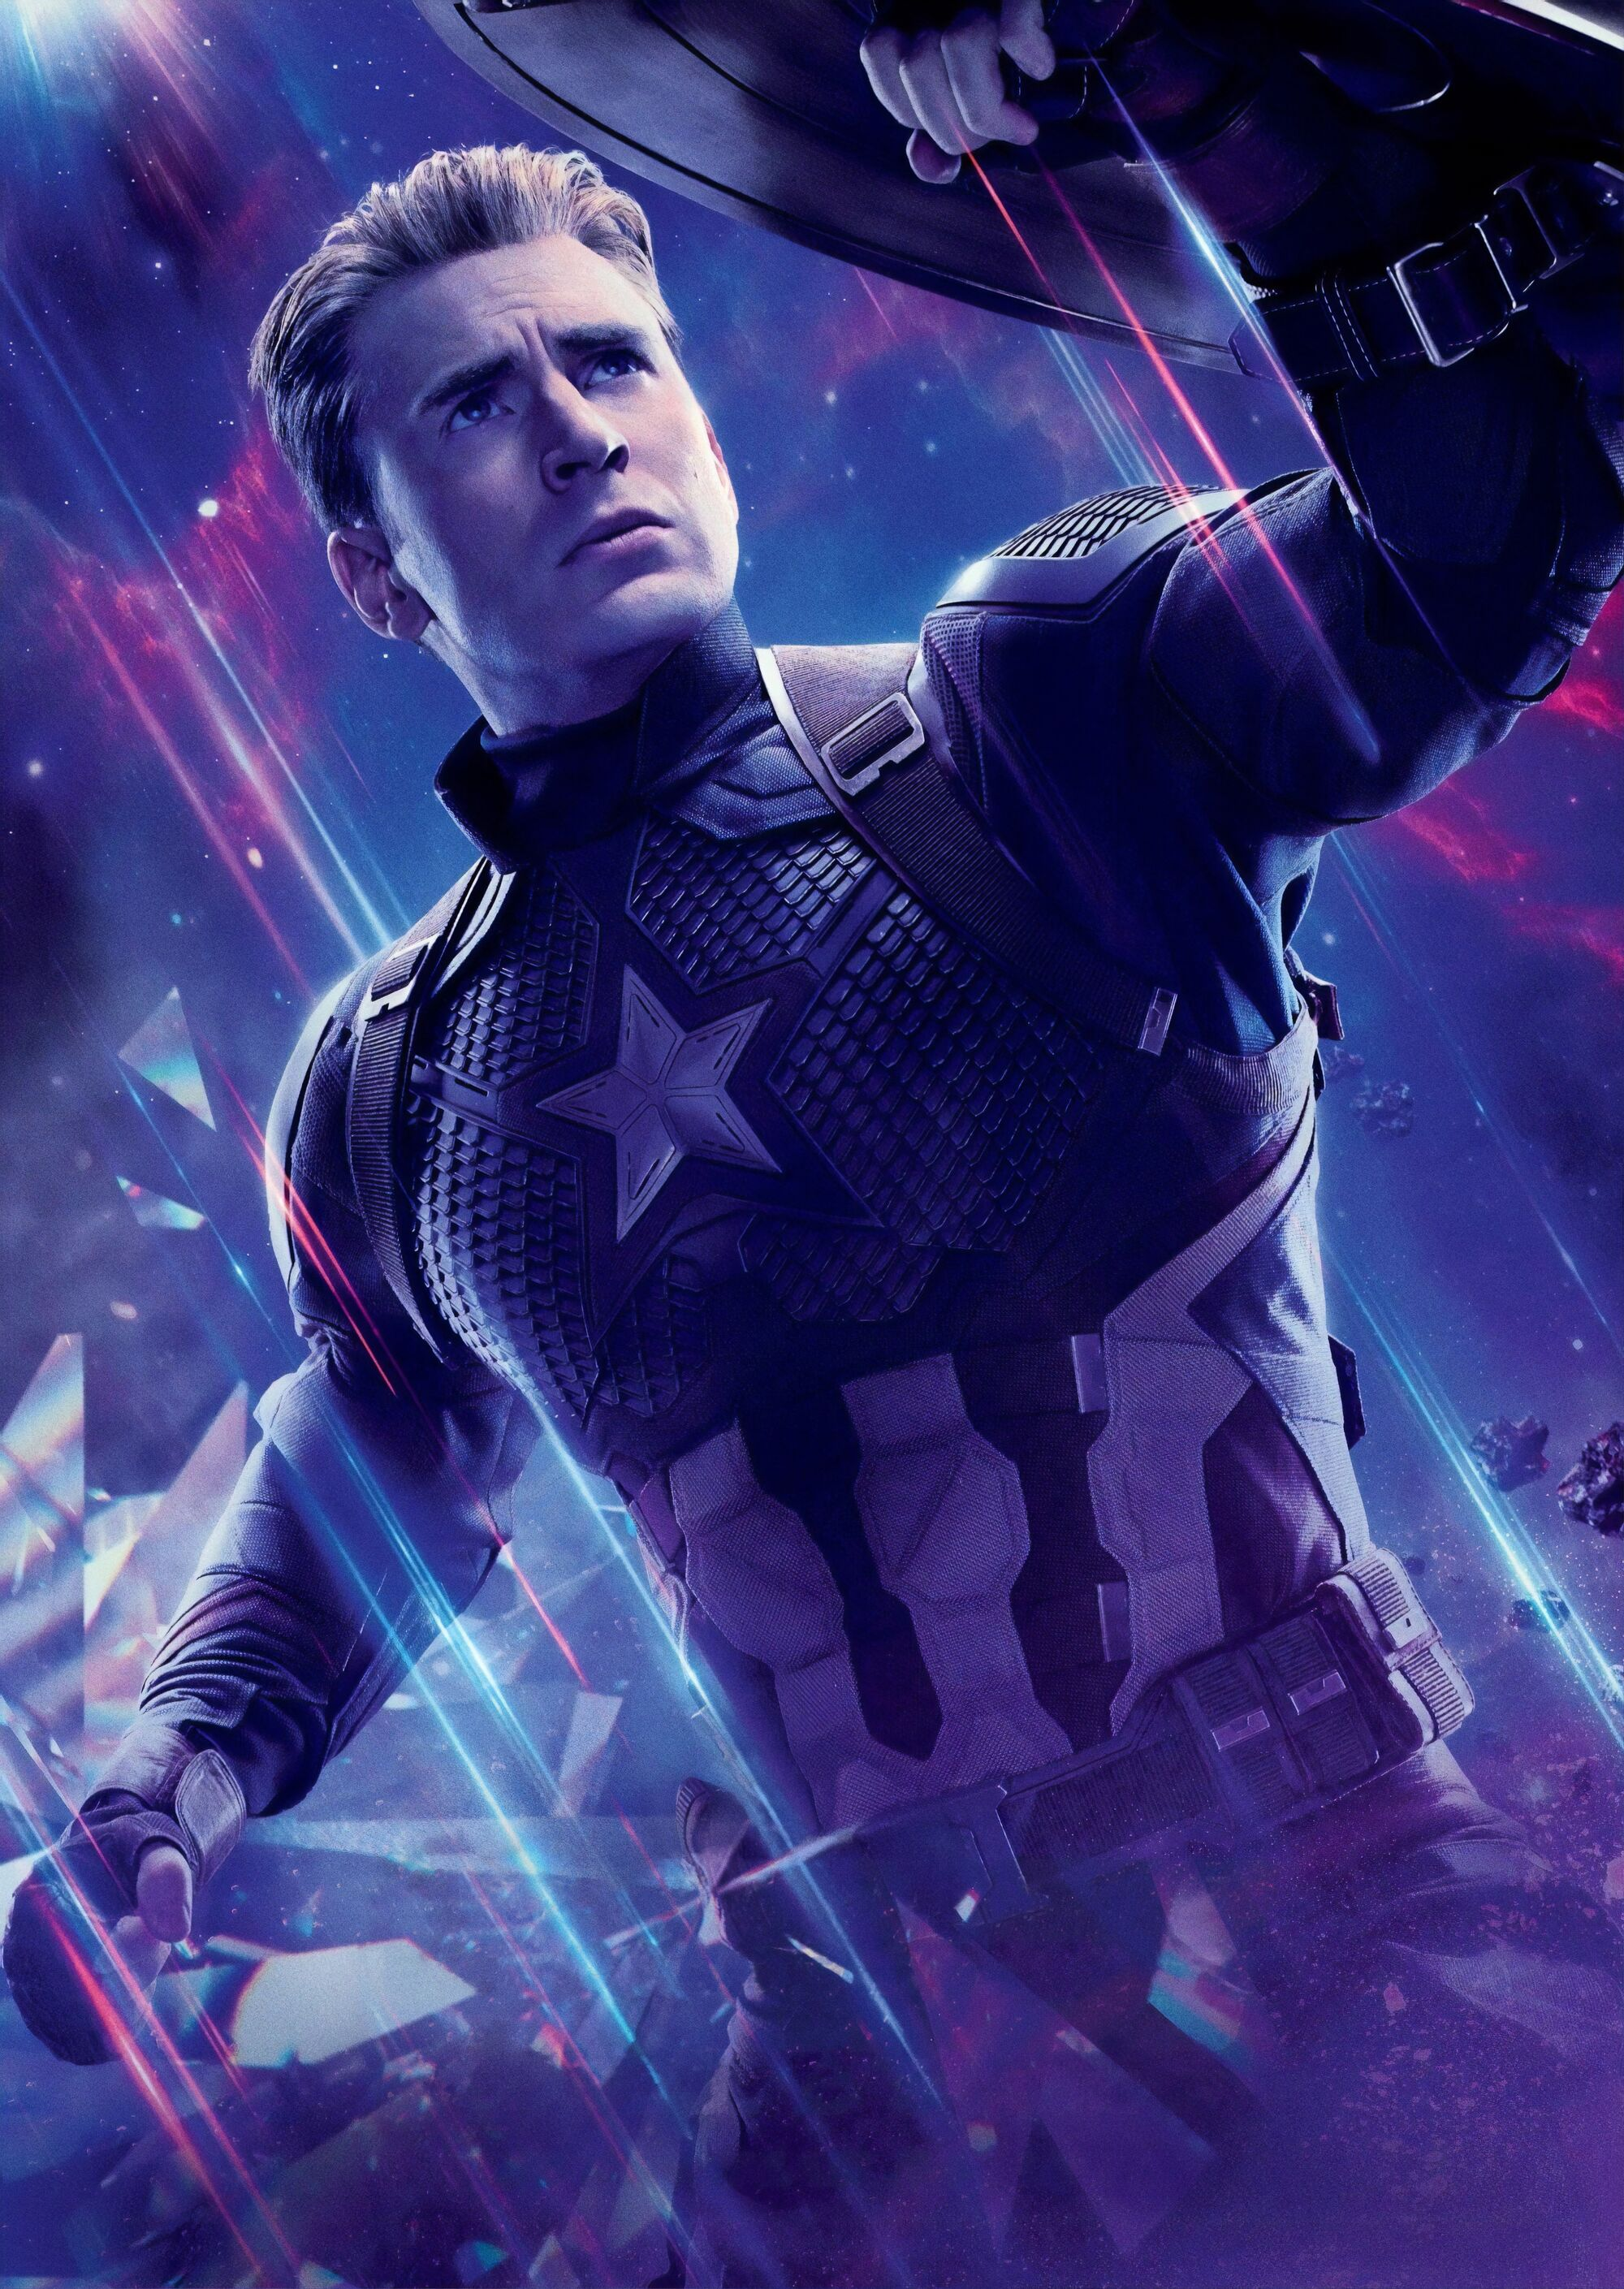 Steven Rogers | Marvel Movies | FANDOM powered by Wikia